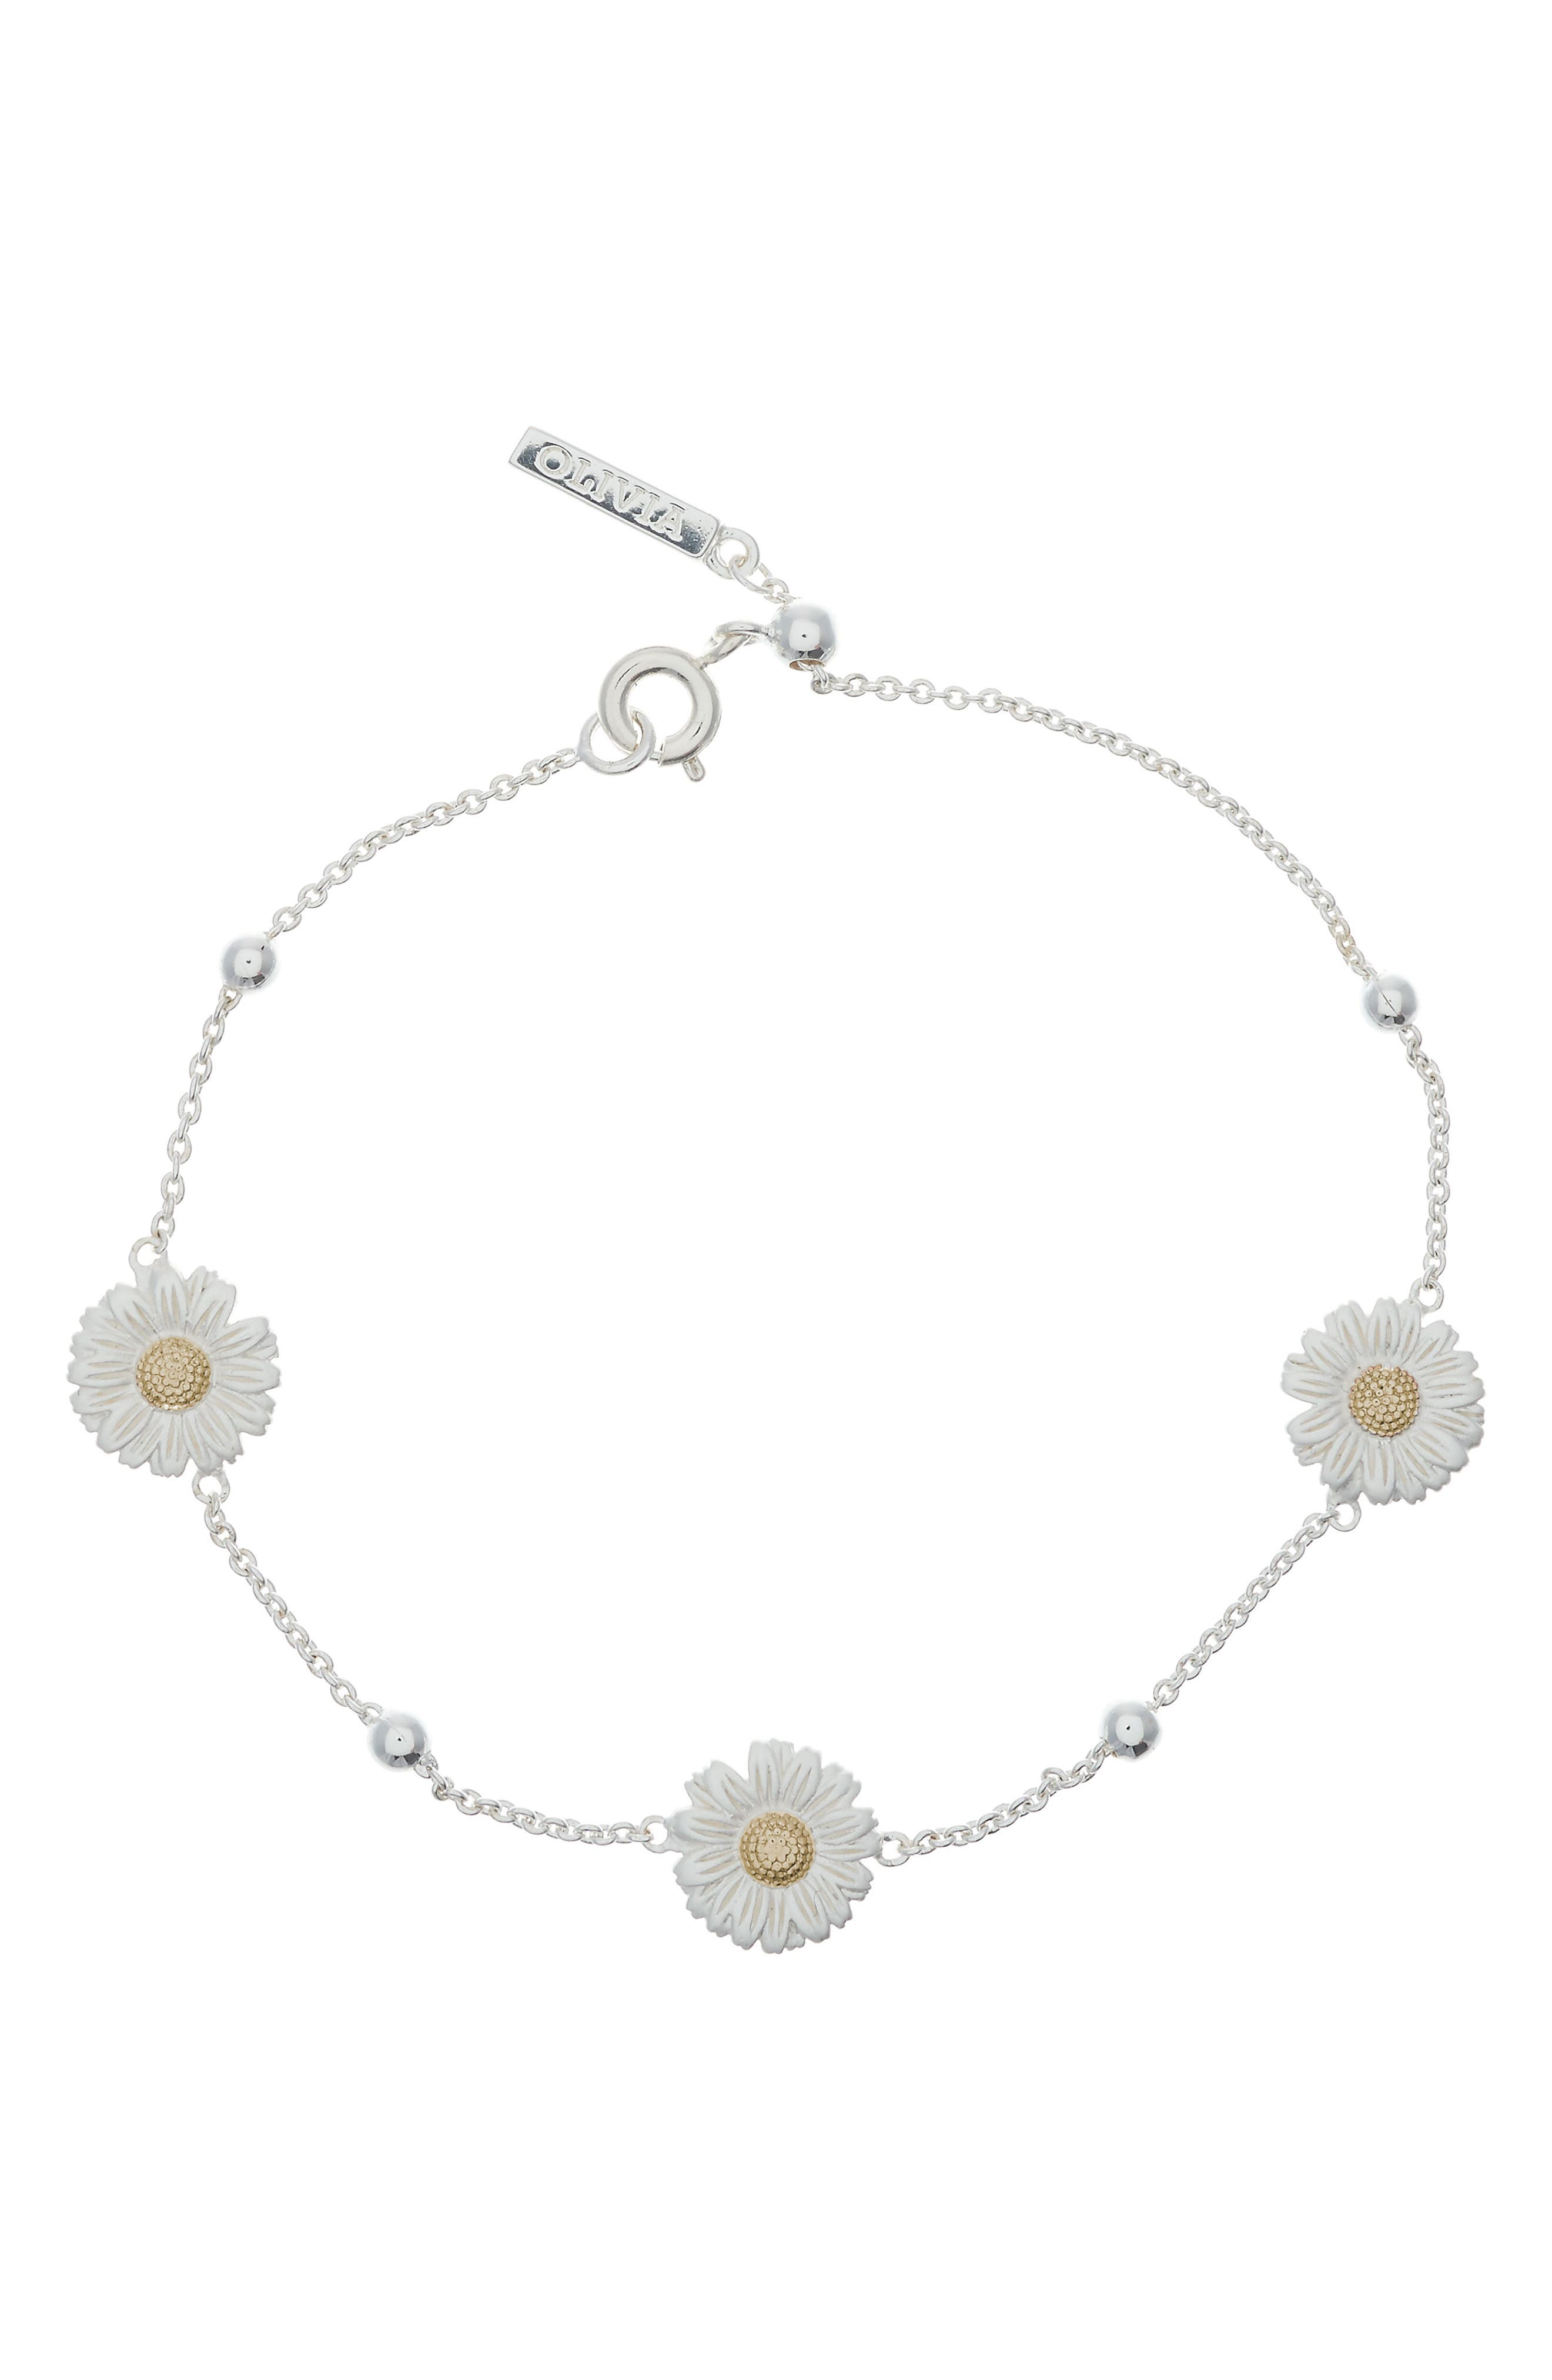 3D Daisy Ball Chain Bracelet,                             Main thumbnail 1, color,                             SILVER/ GOLD